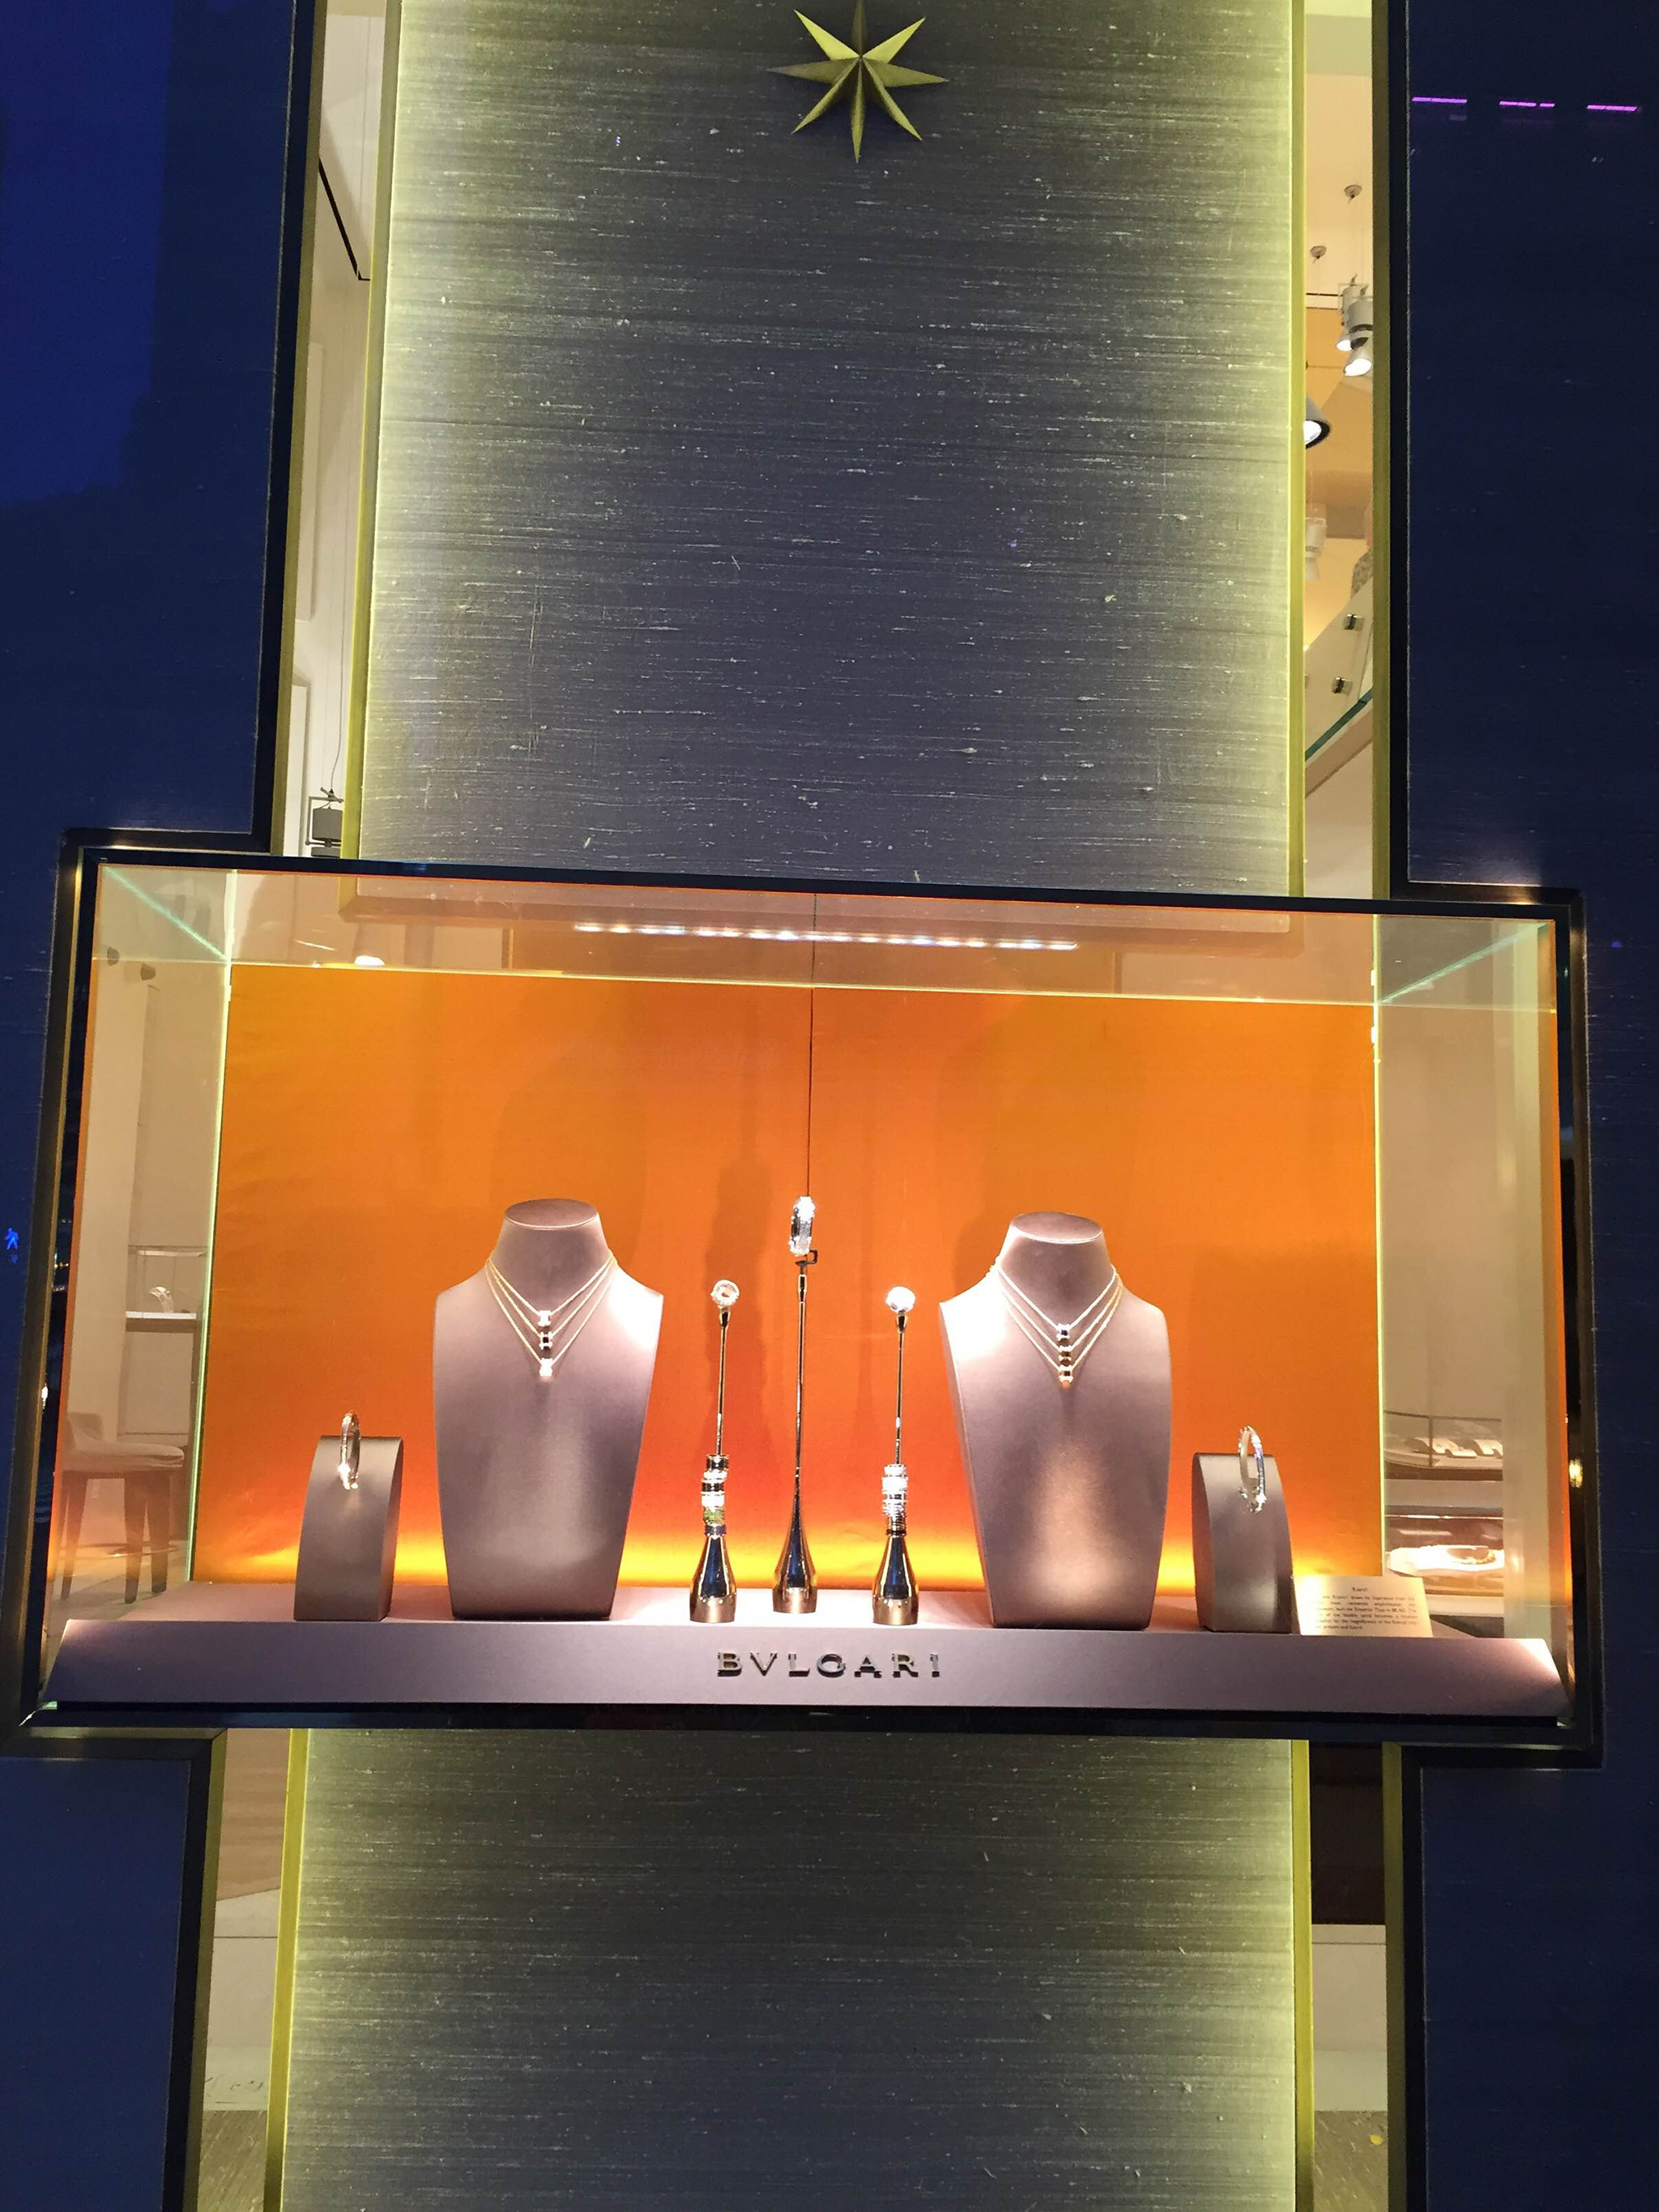 Bvlgari S Window Displays New York February 16